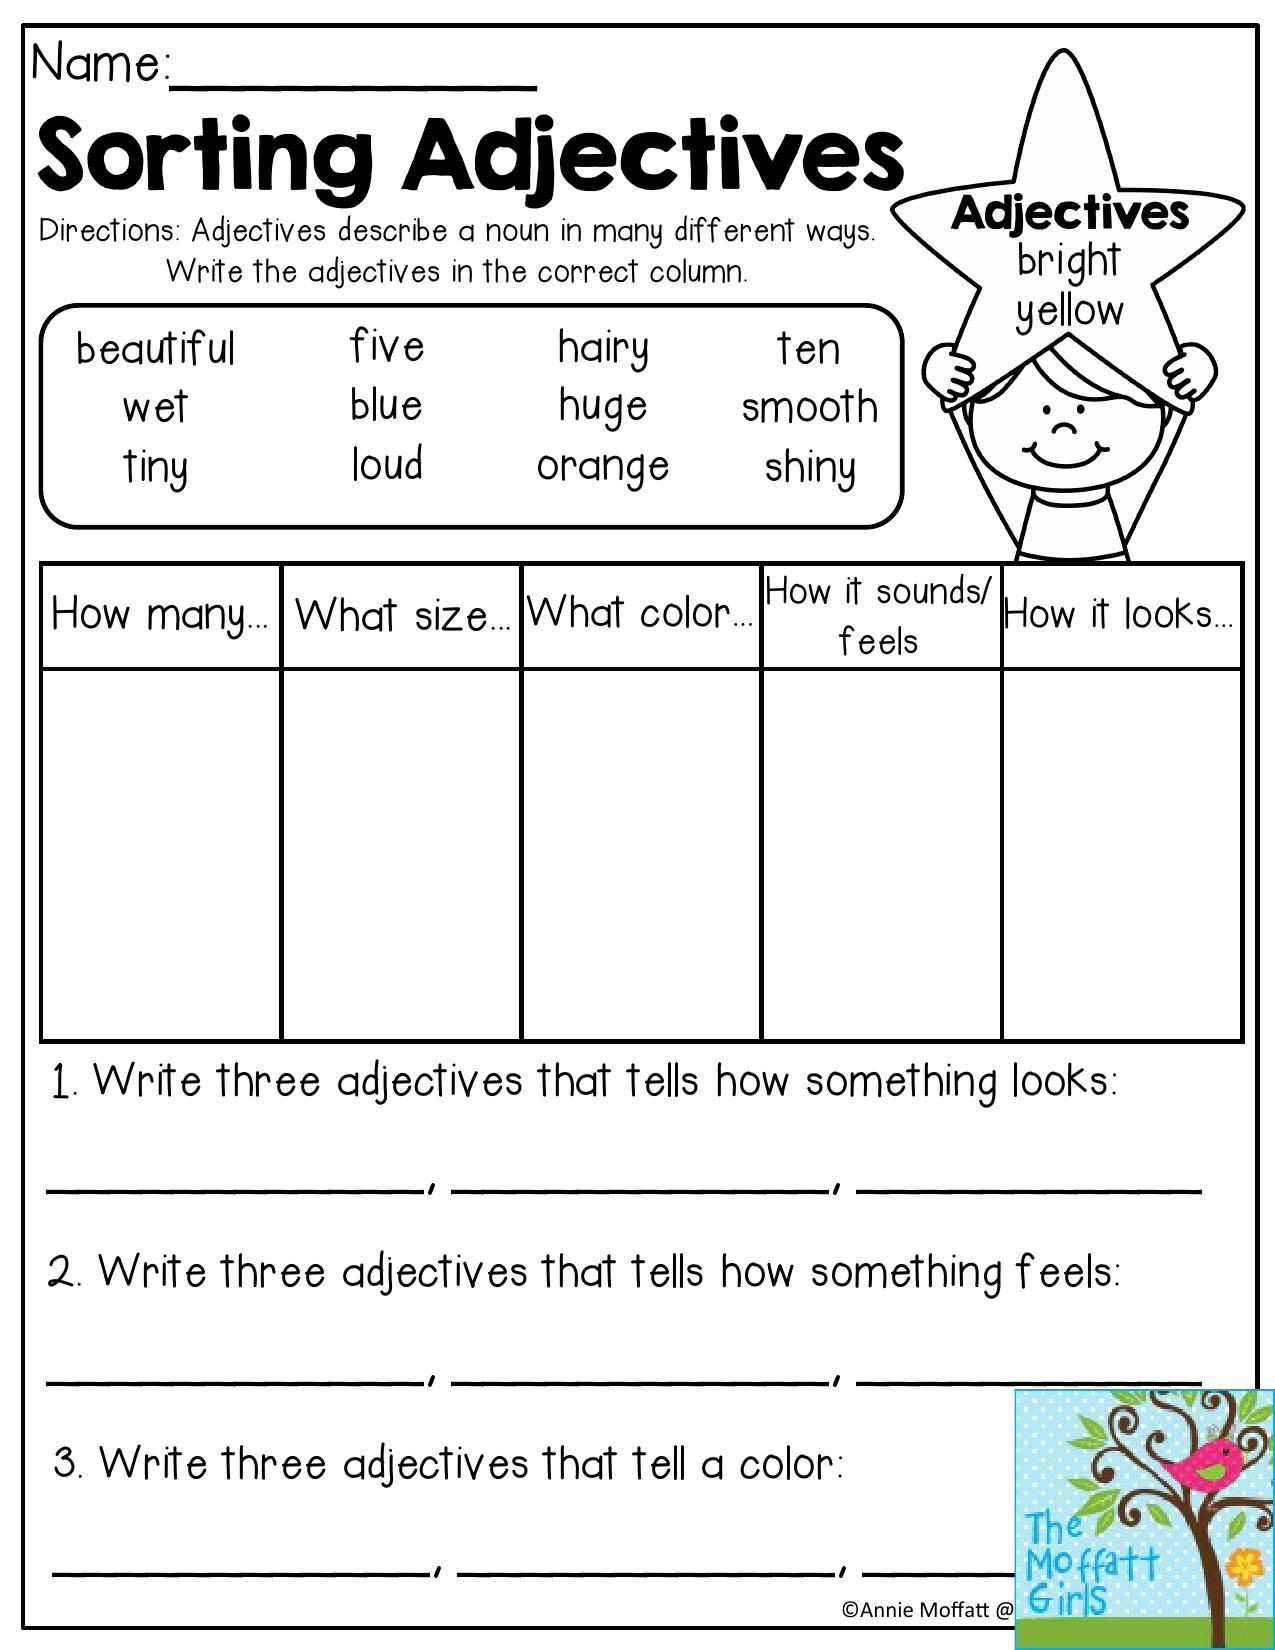 Adjectives Worksheet 2nd Grade sorting Adjectives Adjectives Describe A Noun In Many